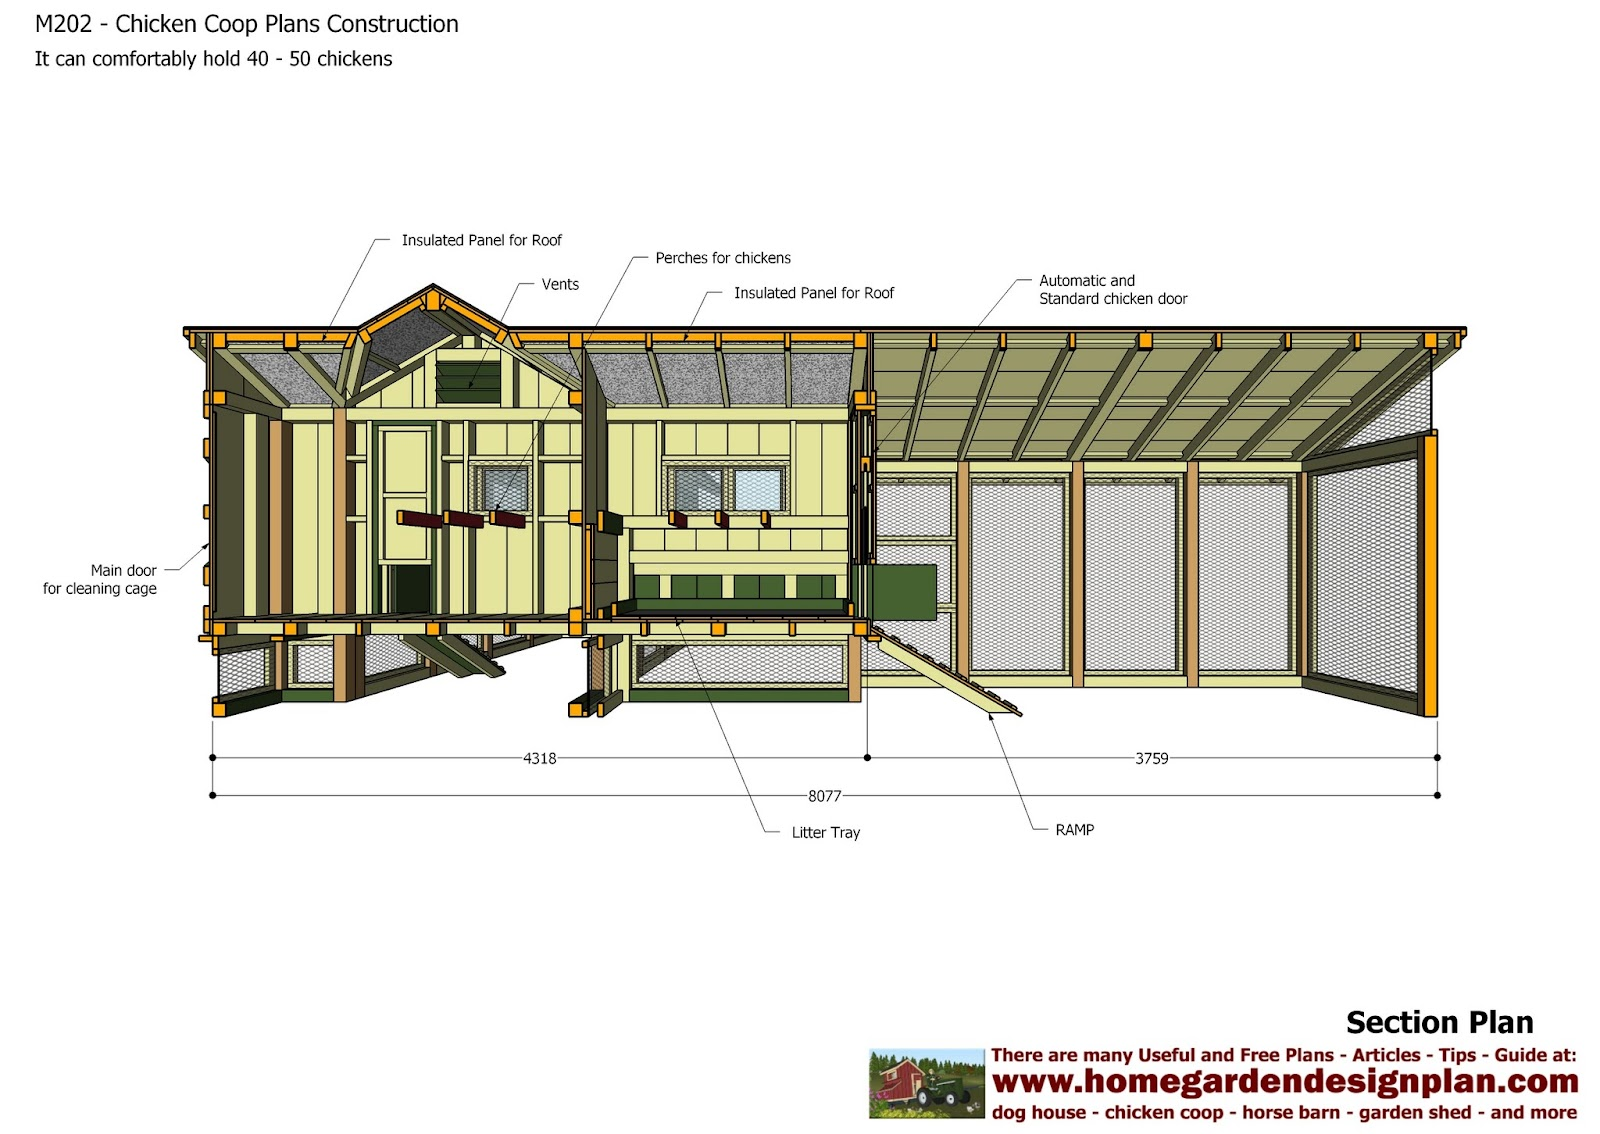 Home garden plans m202 chicken coop plans construction for How to design a chicken coop